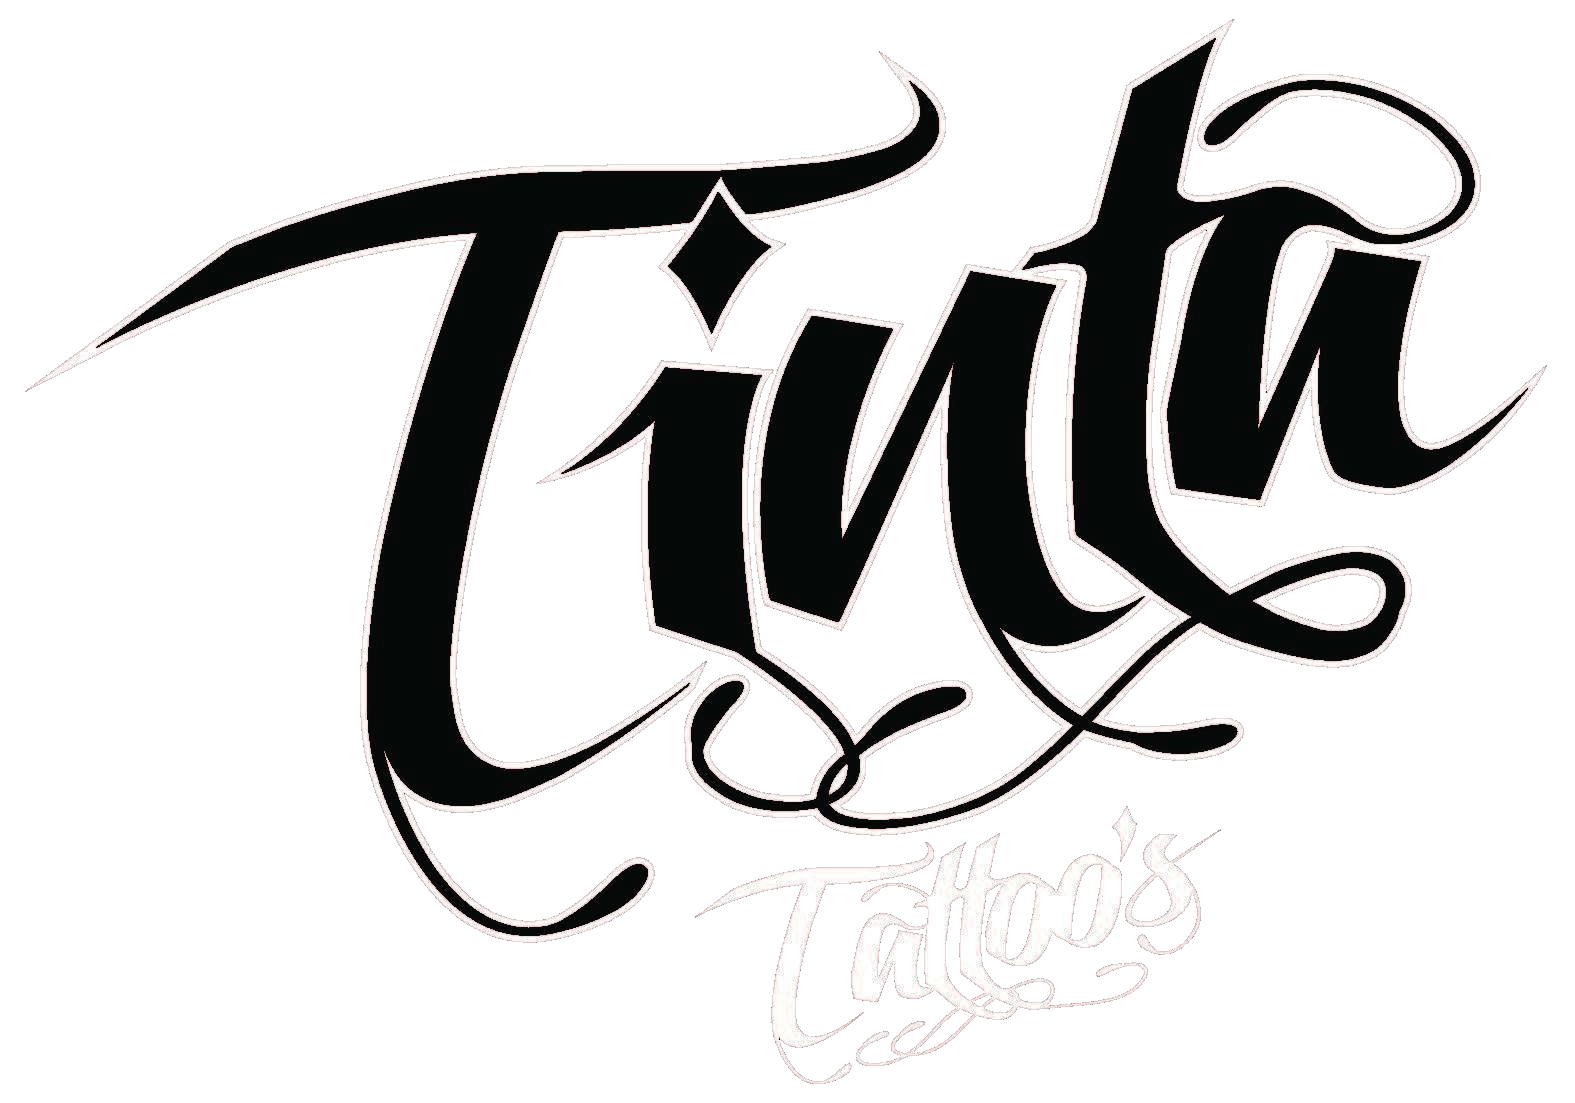 Tinta Tattoo's